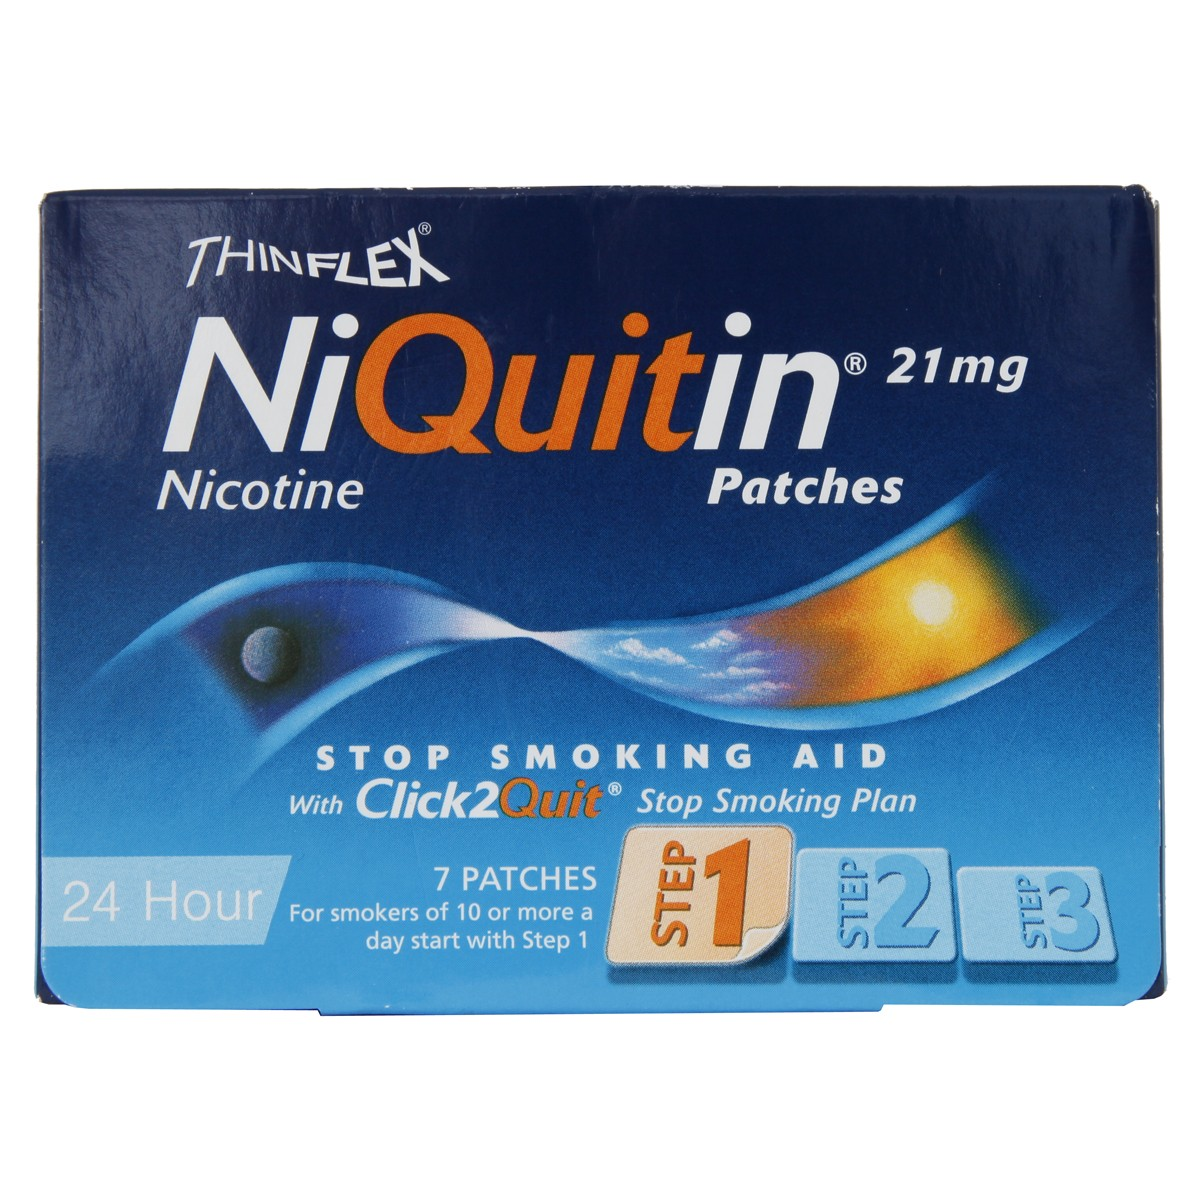 Niquitin Patches 21mg Original - Step 1 - 7 Patches